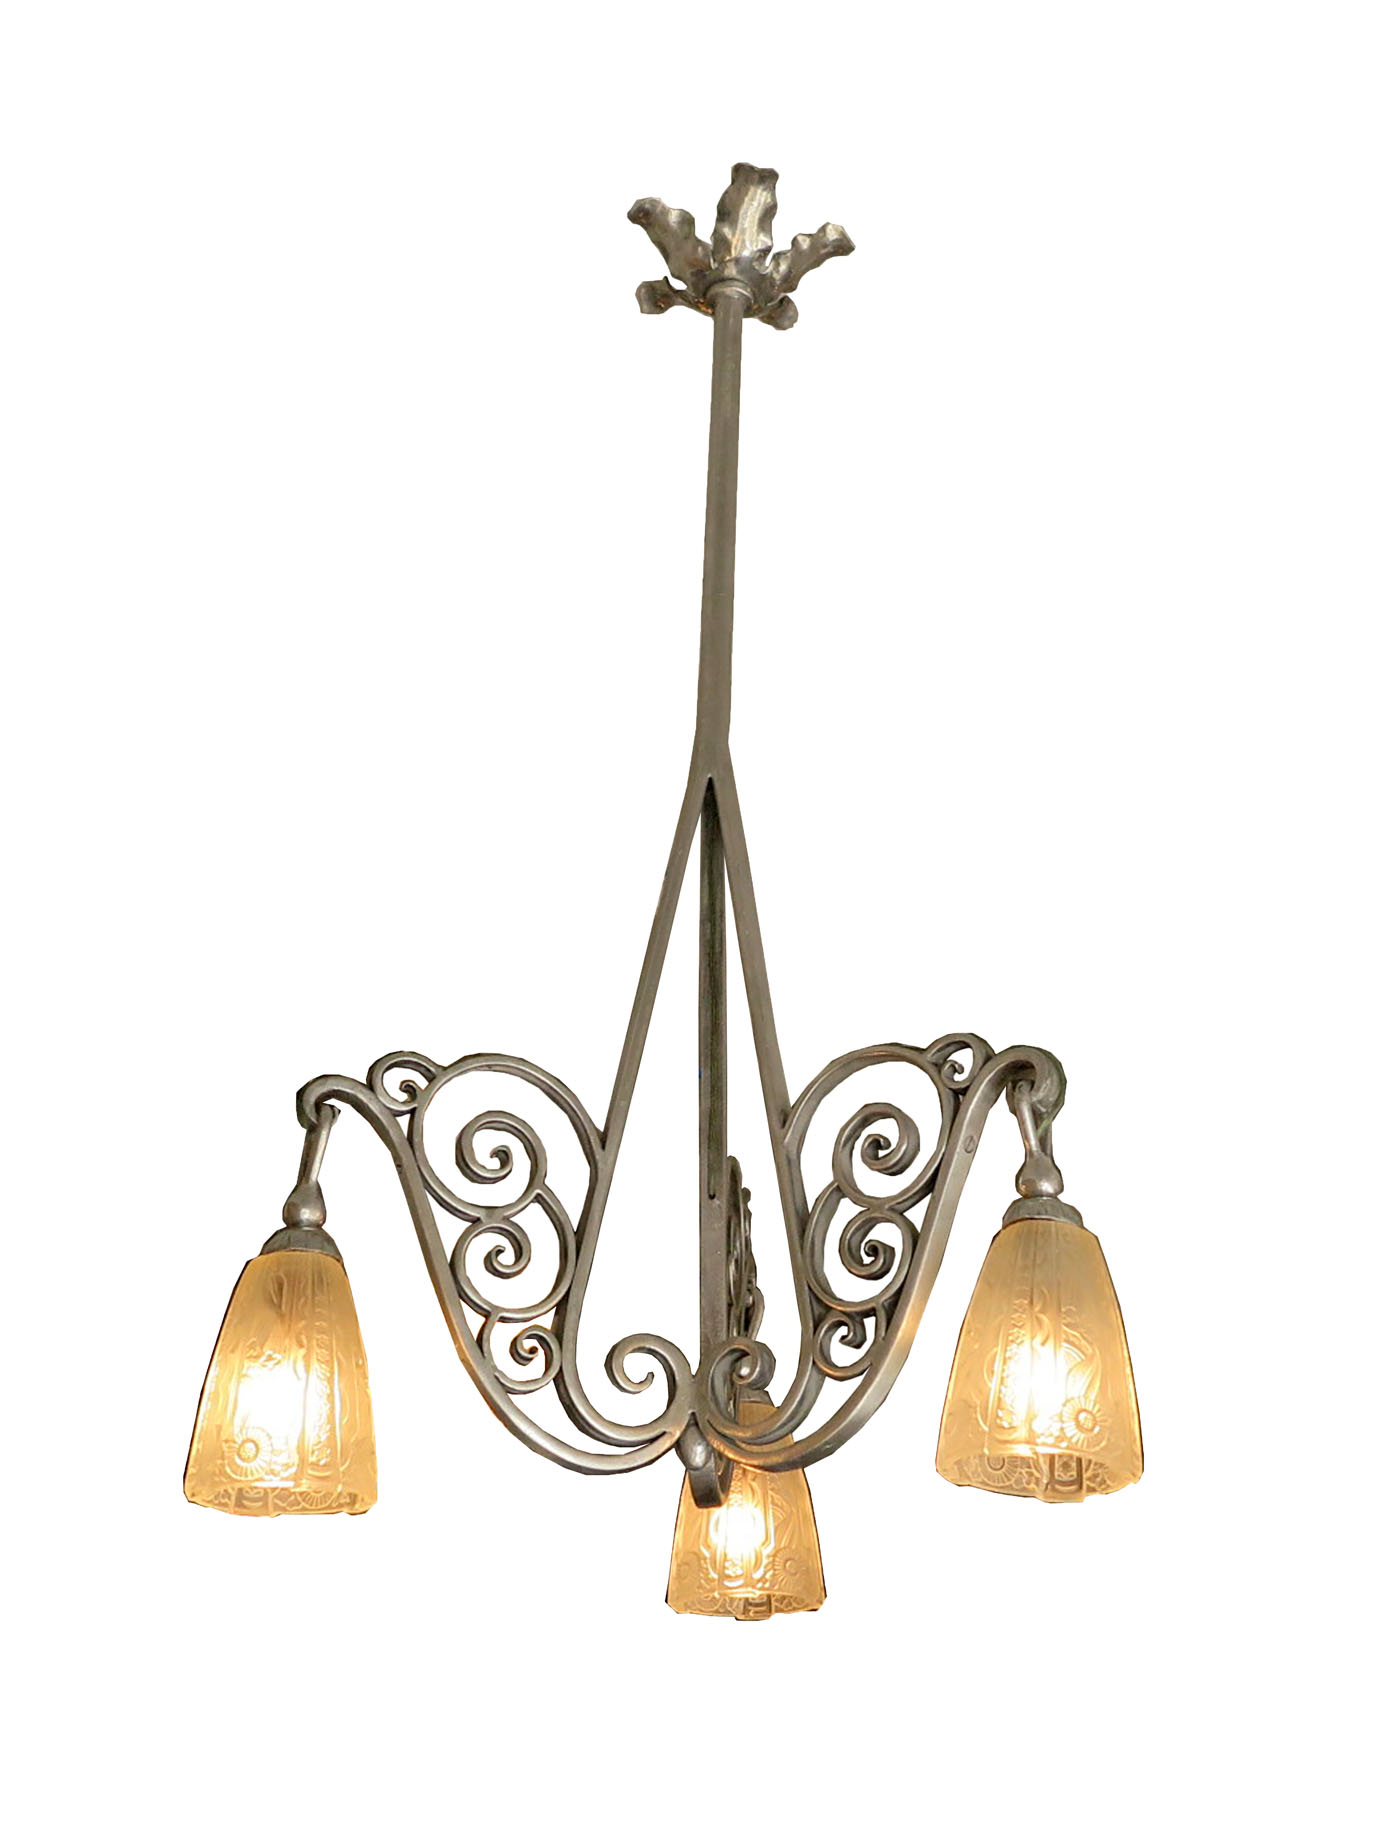 French art deco chandelier modernism french art deco chandelier arubaitofo Choice Image